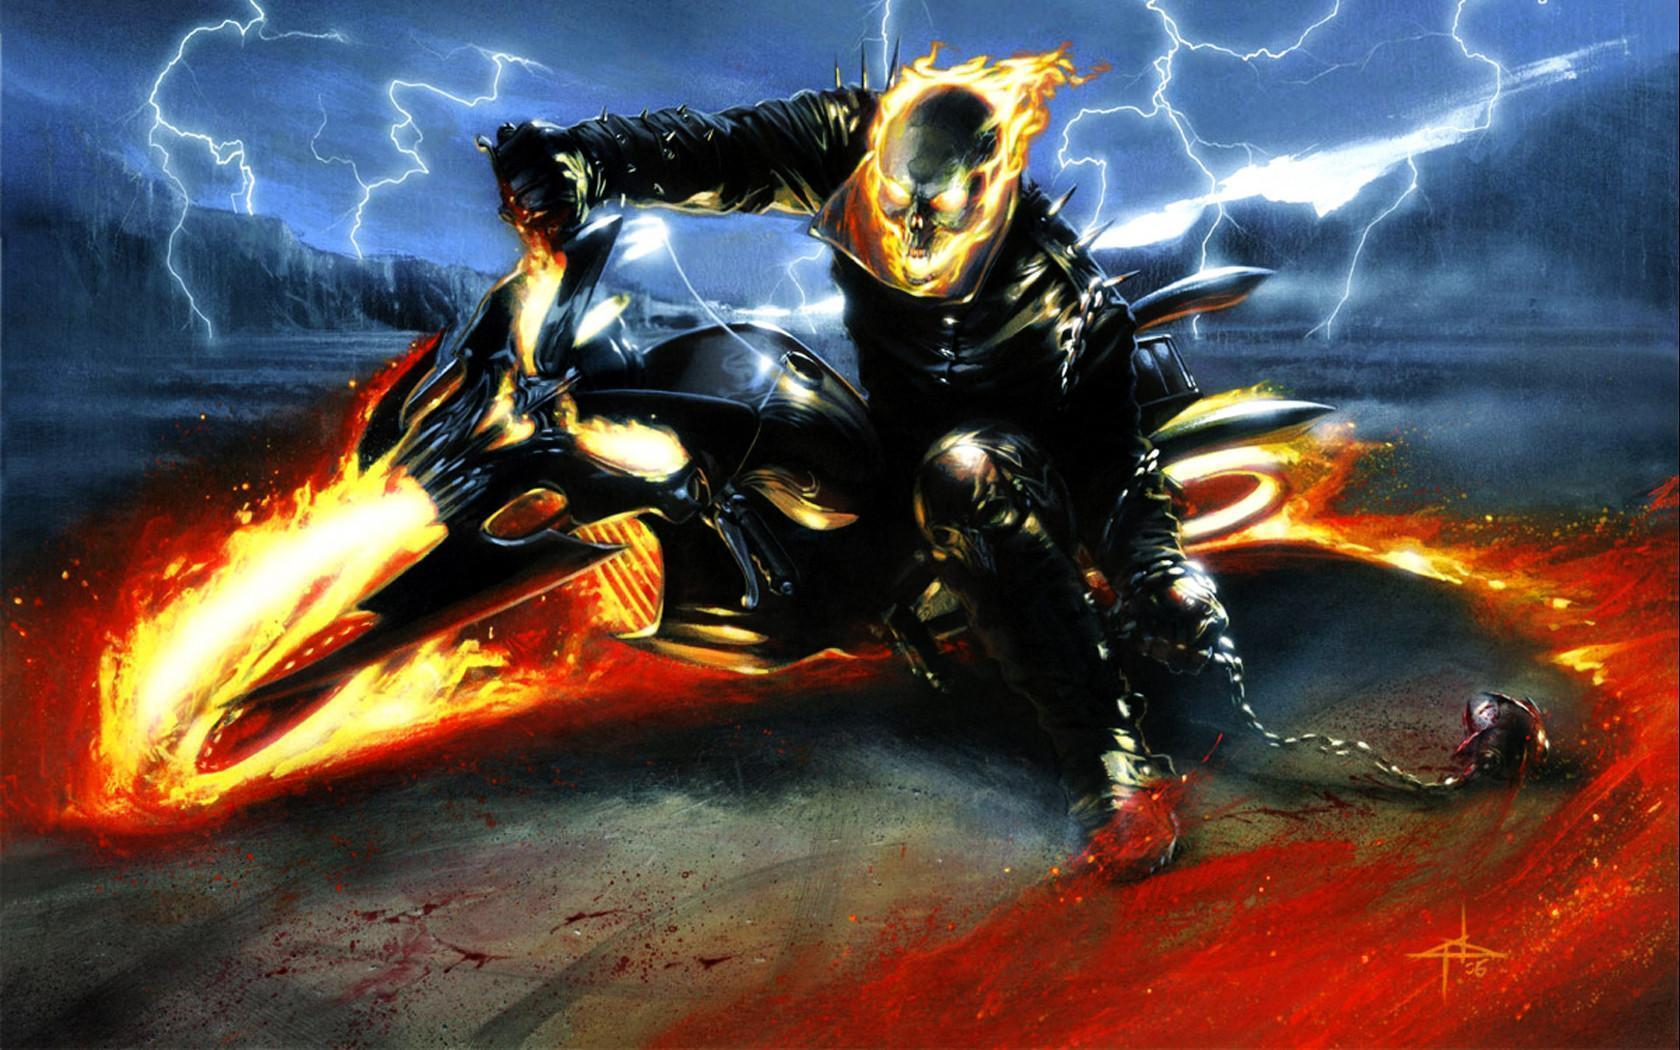 Ghost Rider Wallpapers 2016 - Wallpaper Cave